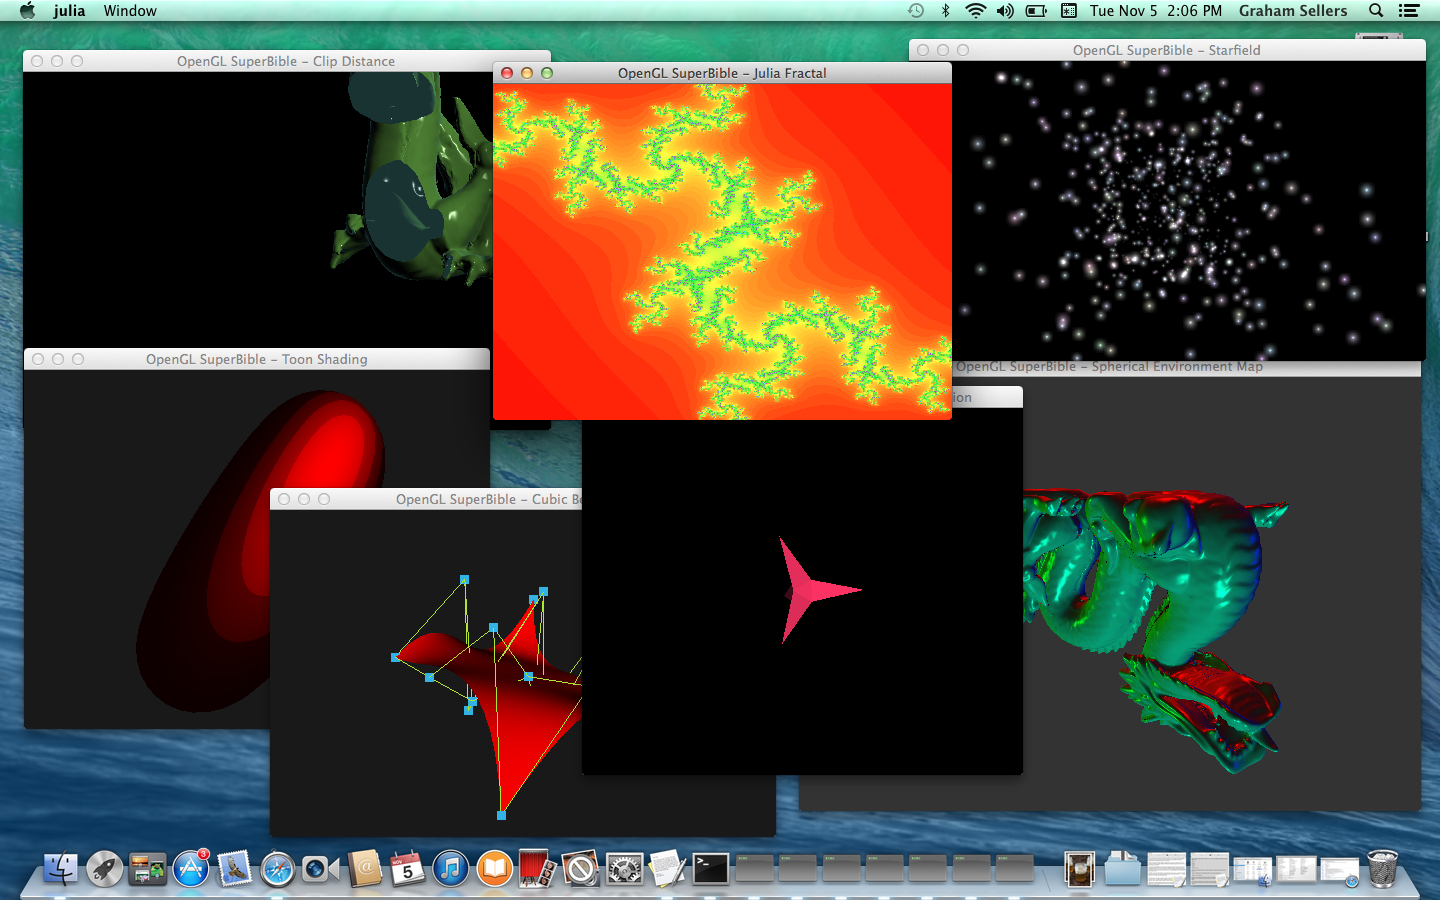 OpenGL SuperBible Samples Running on Mac OS X 10.9